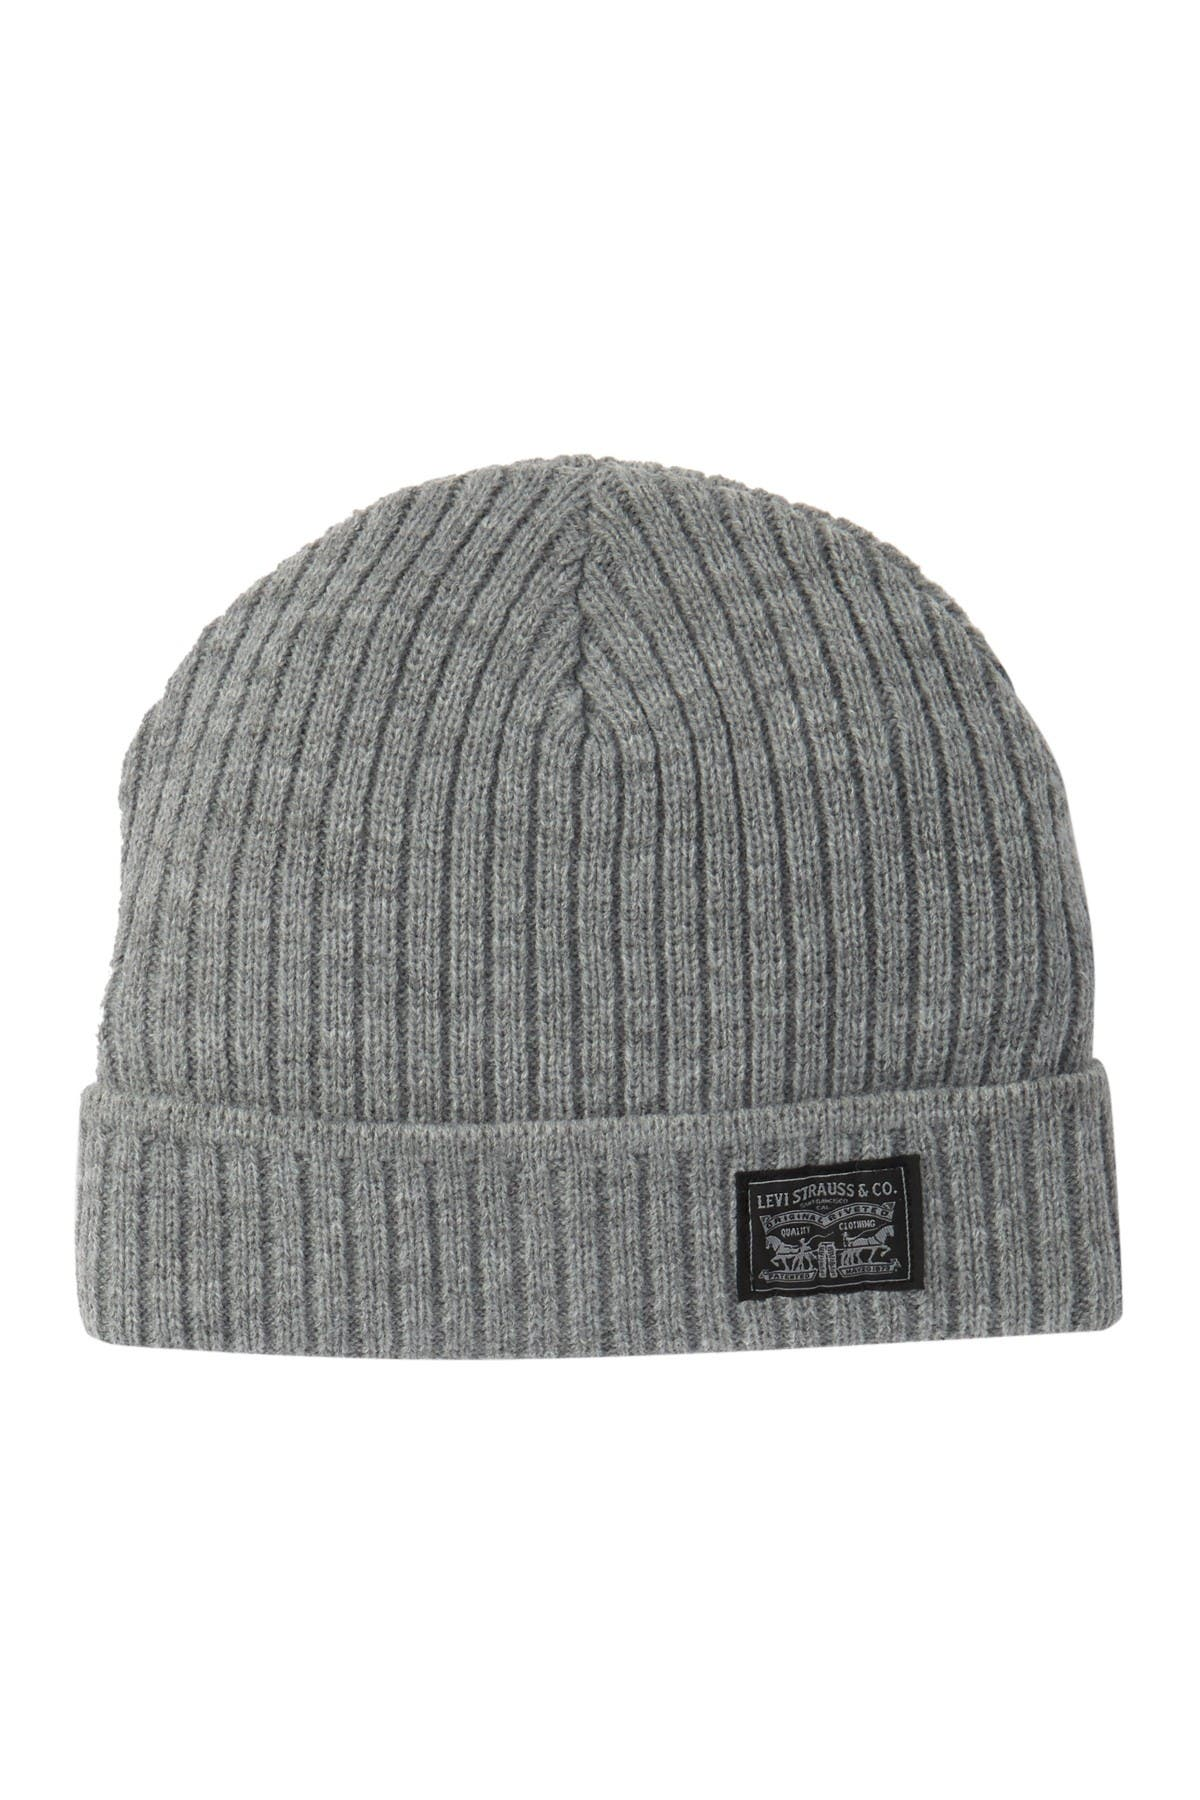 Image of Levi's Woven Label Knit Beanie